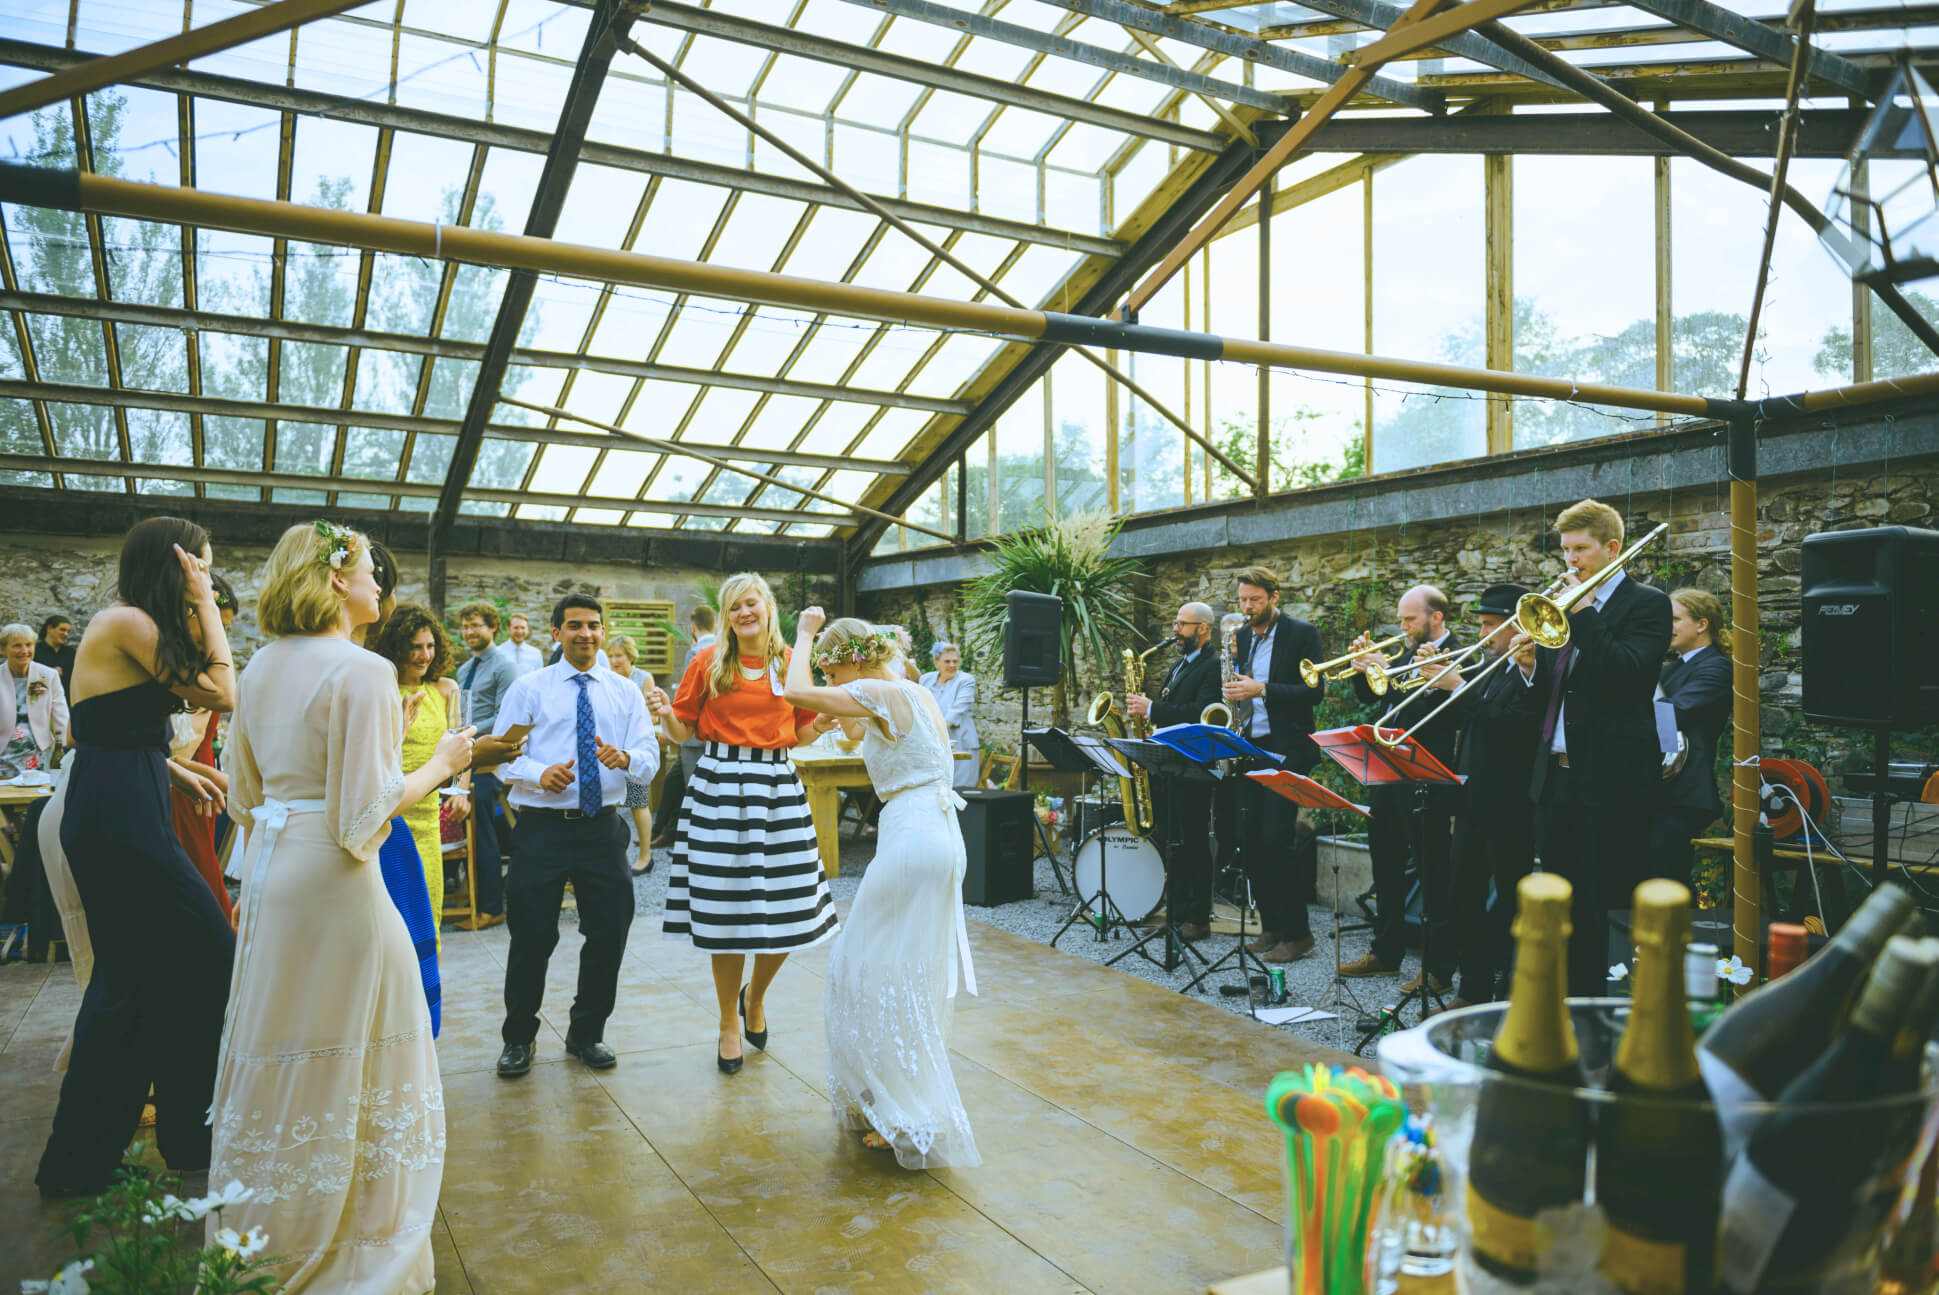 brassjunkies-wedding-guests-on-dancefloor-brass-band-on-stagekeith-riley-bj1.jpg